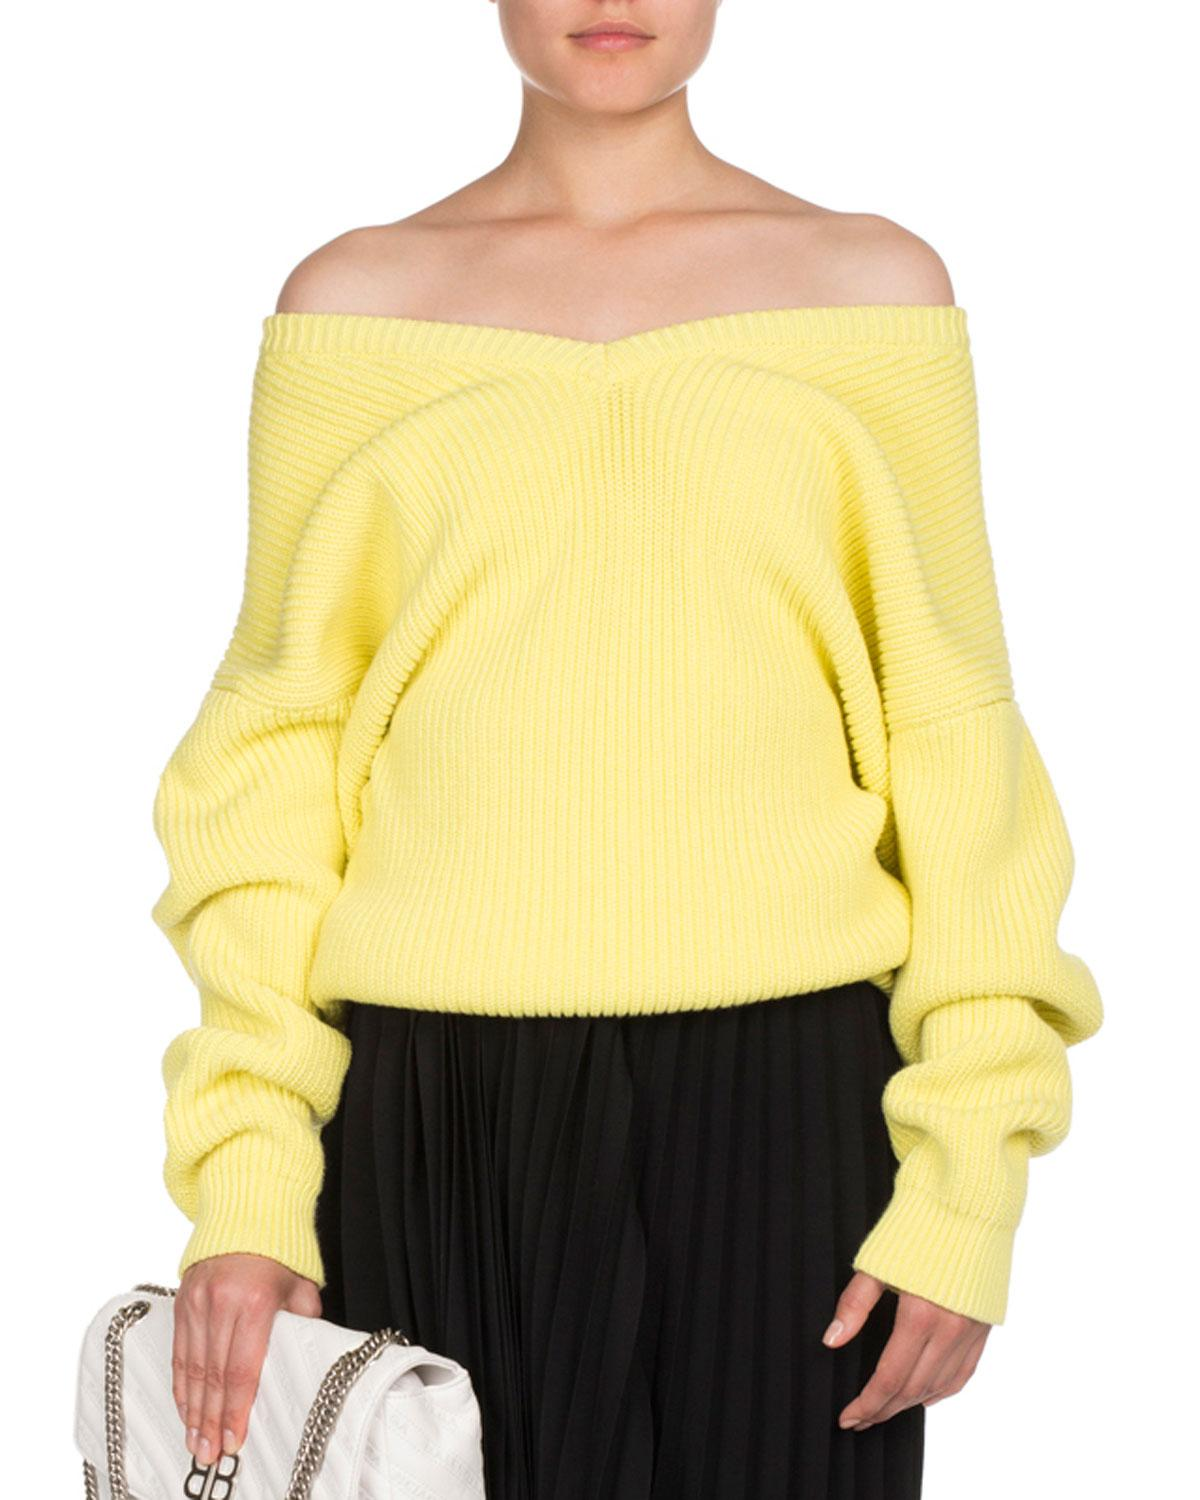 Balenciaga Ribbed Knit Off-shoulder Sweater in Yellow | Lyst